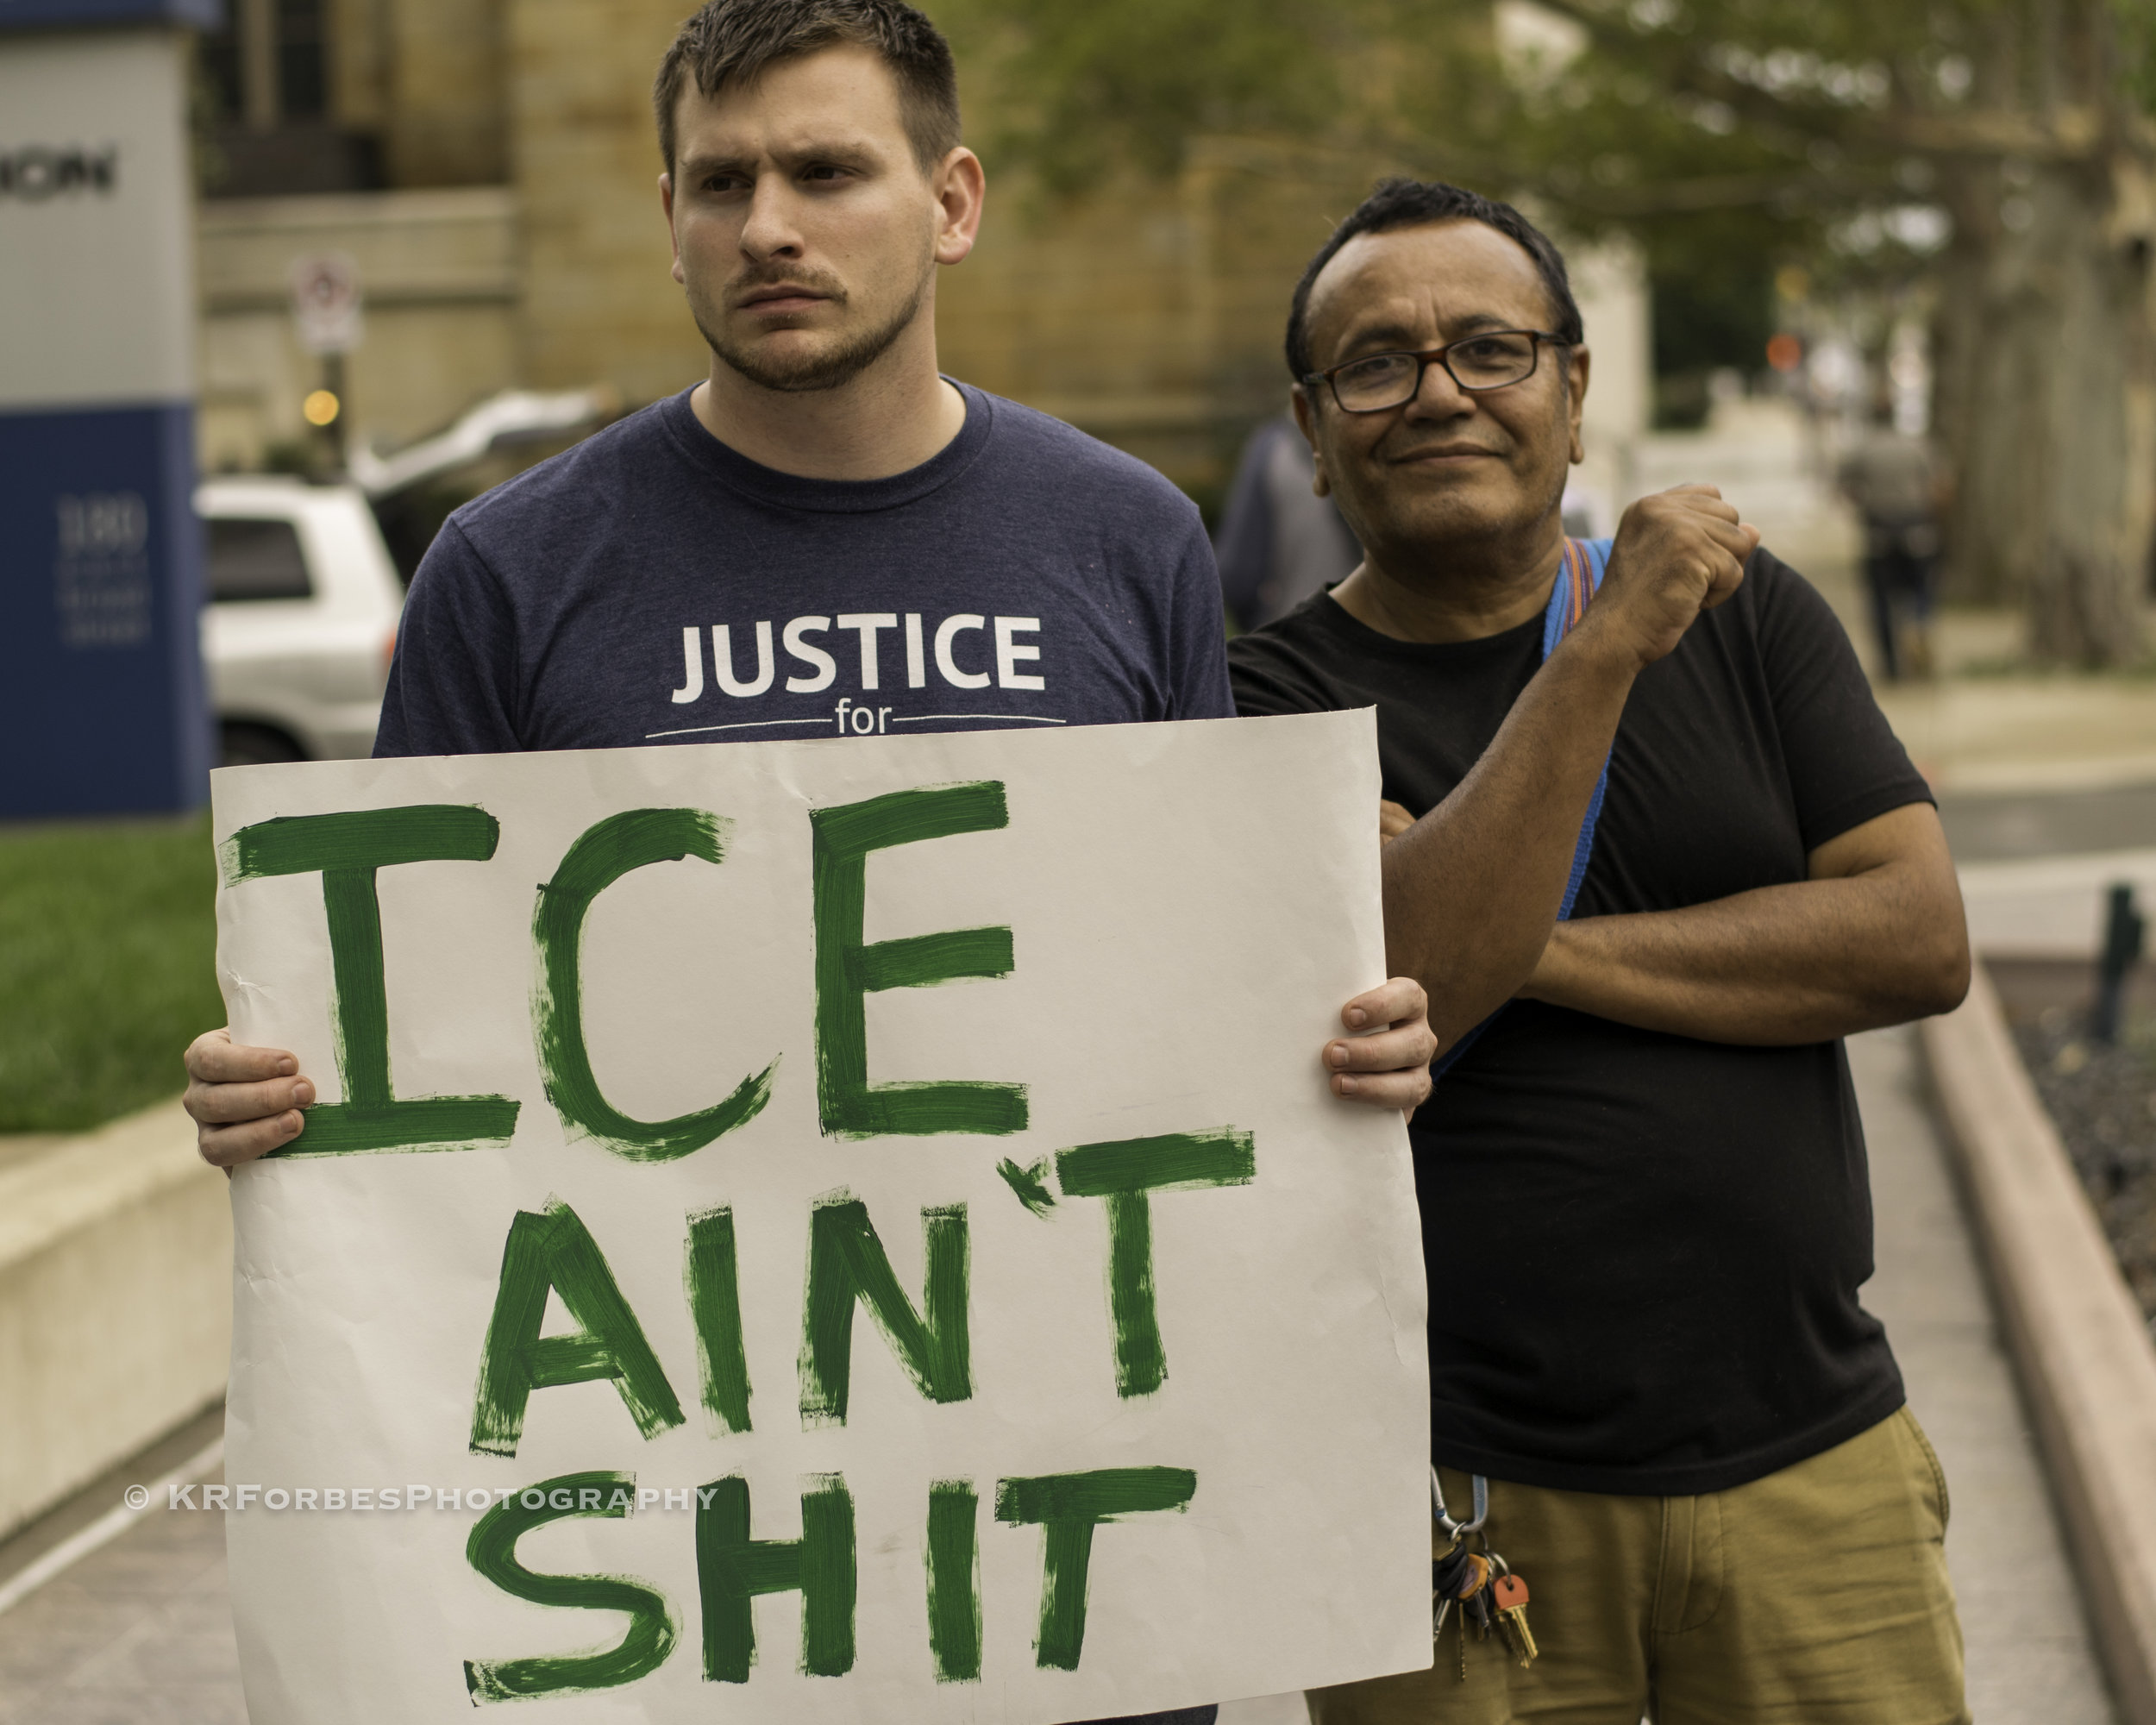 I.C.E - Columbus residents gather in opposition of the rampant ICE raids of 2018click image to view more